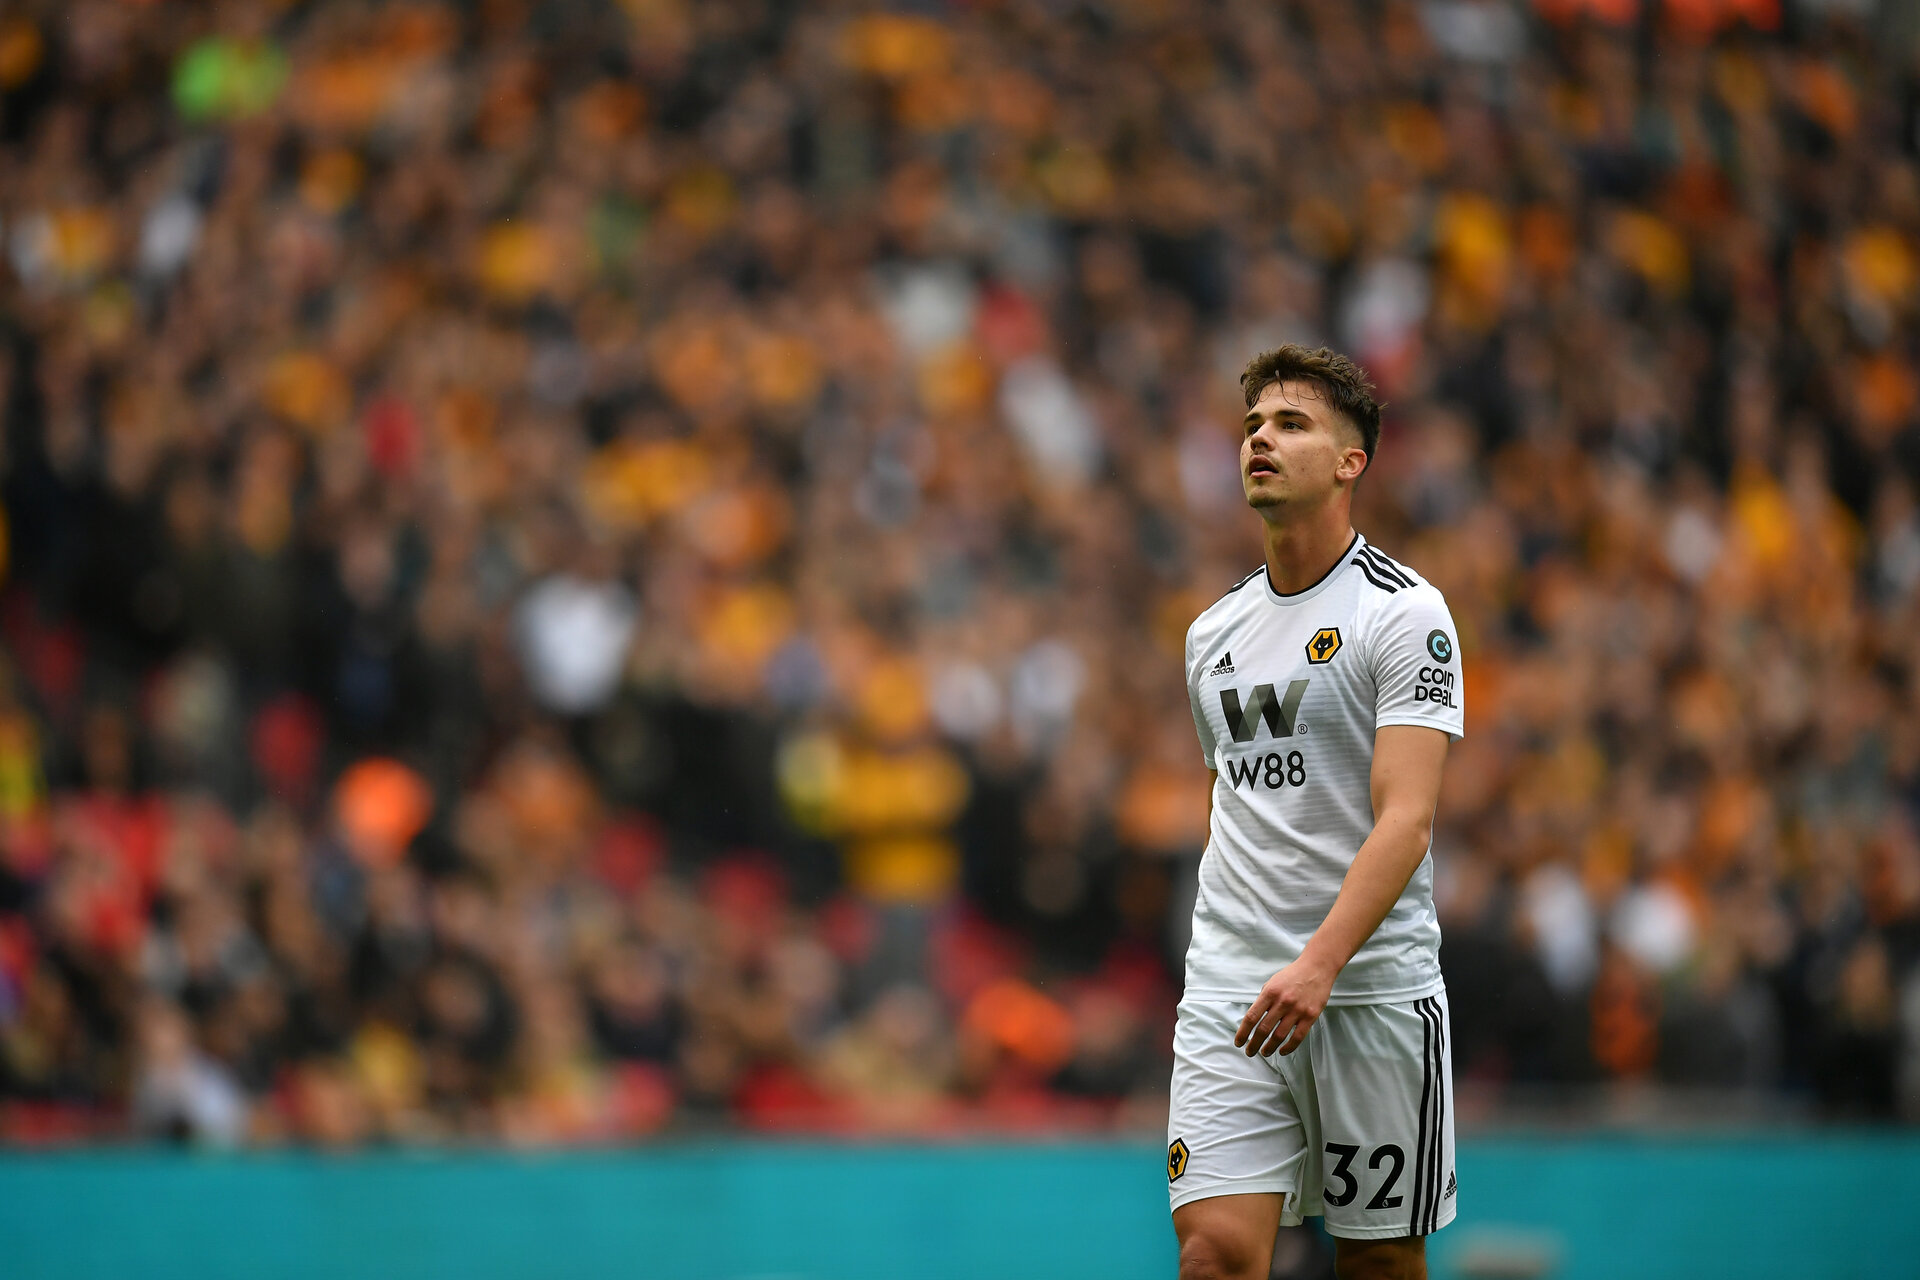 LONDON, ENGLAND - APRIL 07:  Leander Dendoncker of Wolverhampton Wanderers looks on during the FA Cup Semi Final match between Watford and Wolverhampton Wanderers at Wembley Stadium on April 07, 2019 in London, England. (Photo by Dan Mullan/Getty Images)